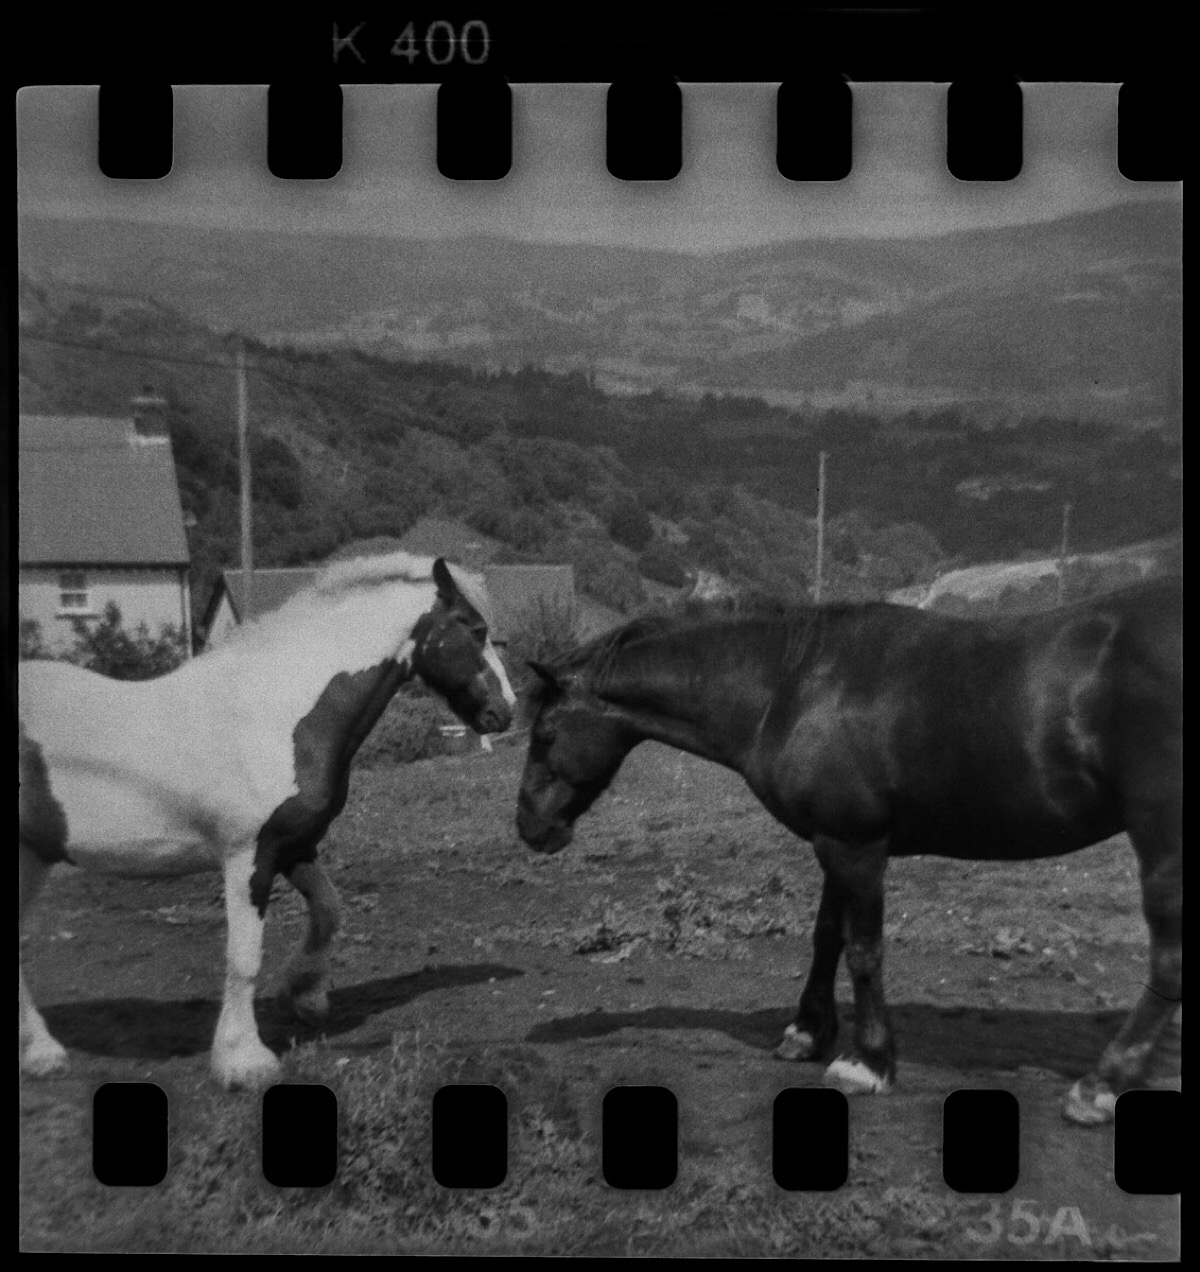 Two horses shot with a Bencini Comet S 127 format camera.